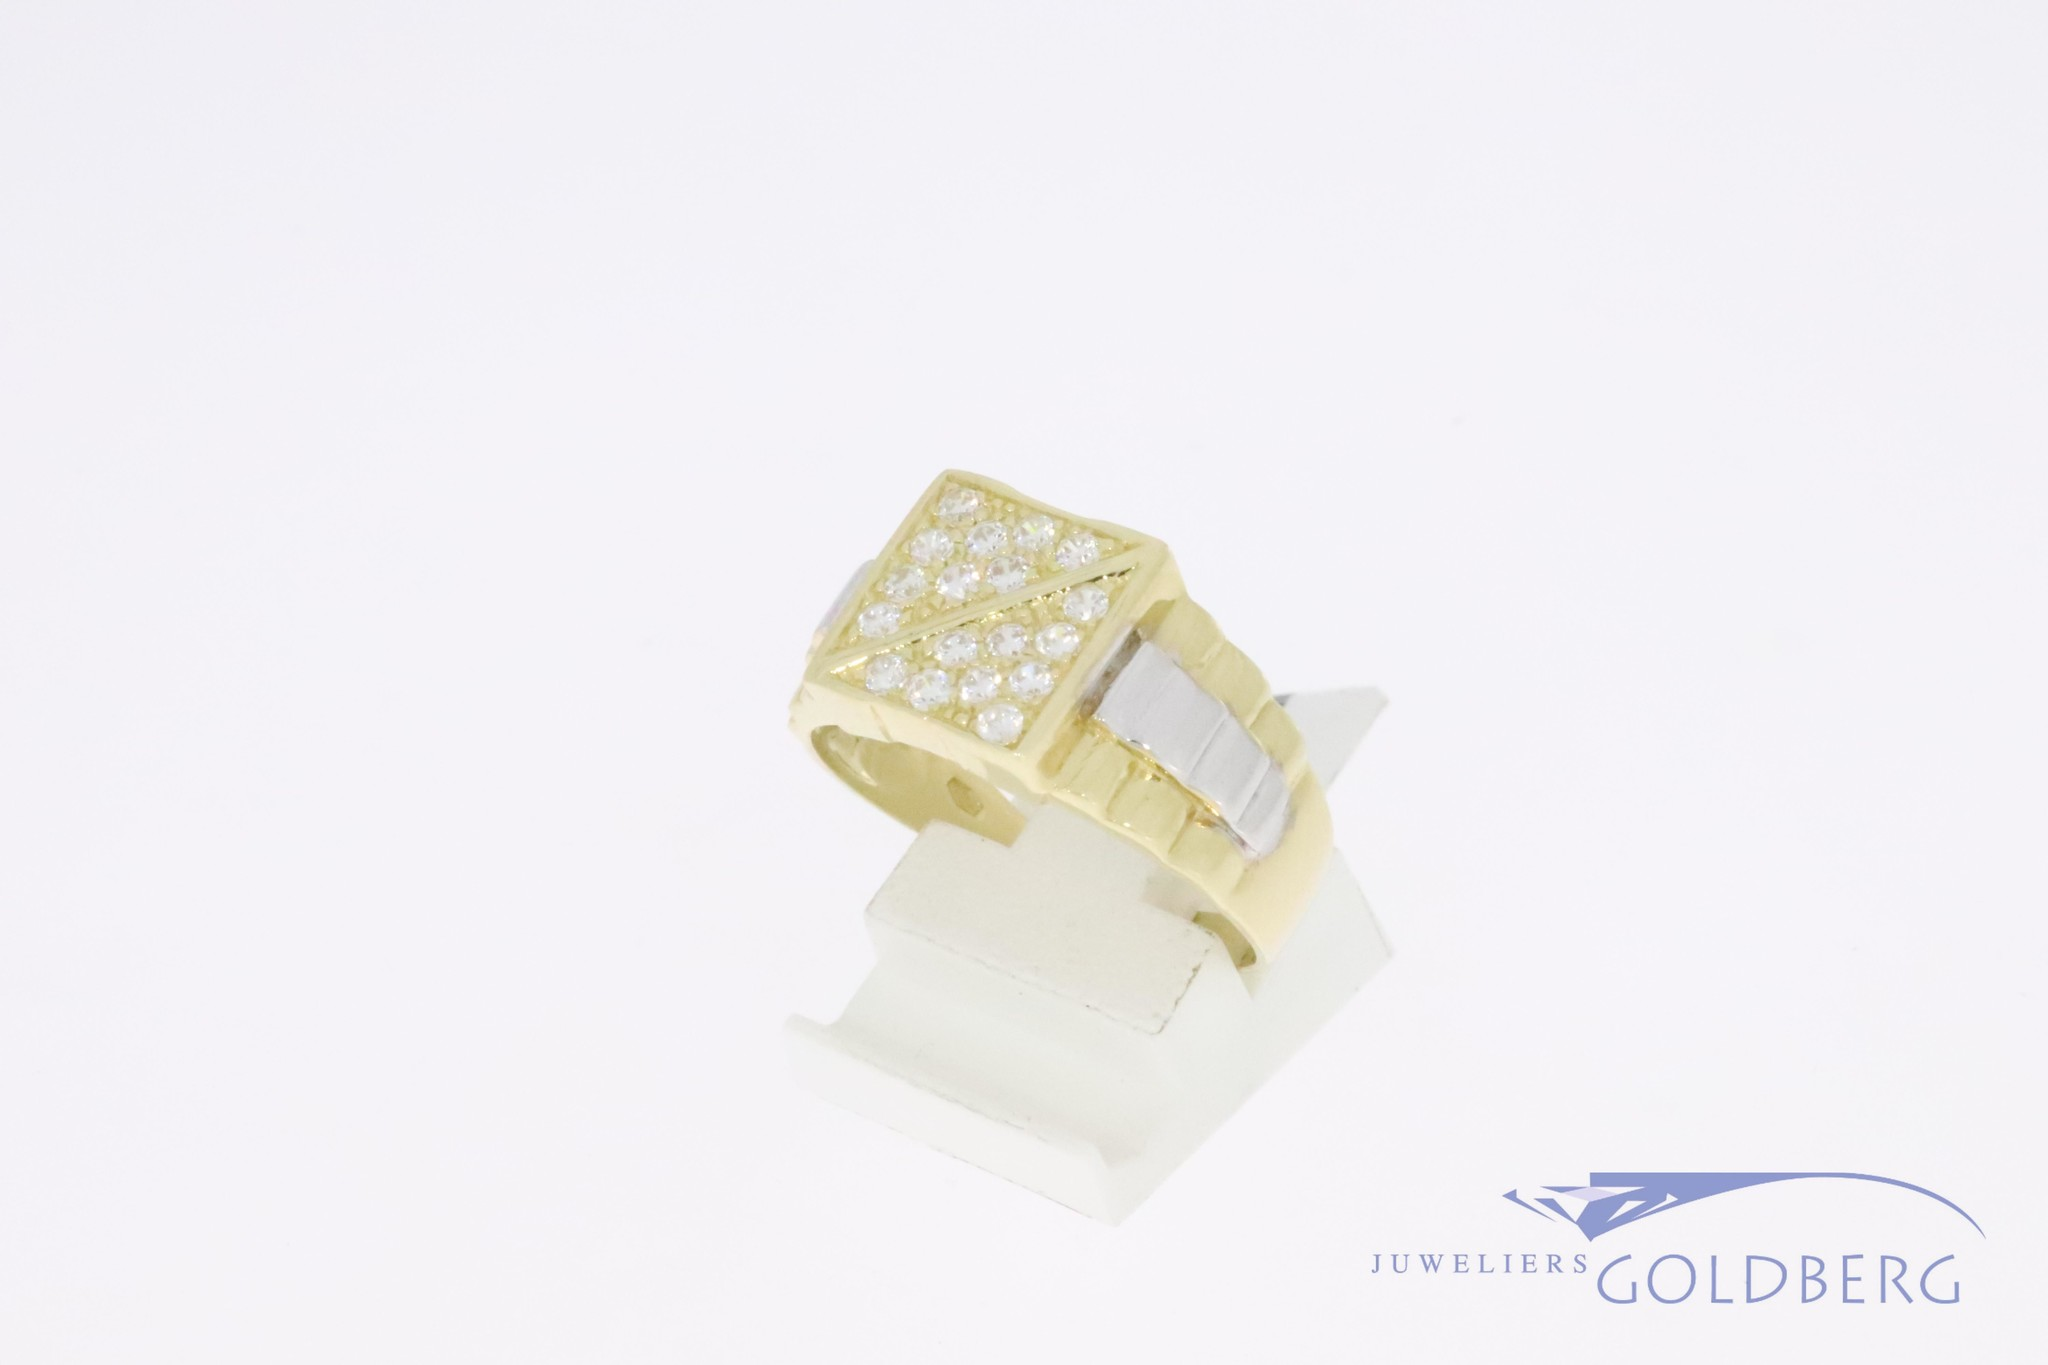 Sturdy 14k gold bicolor retro signet ring ('80s-'90s style) with zirkonia's